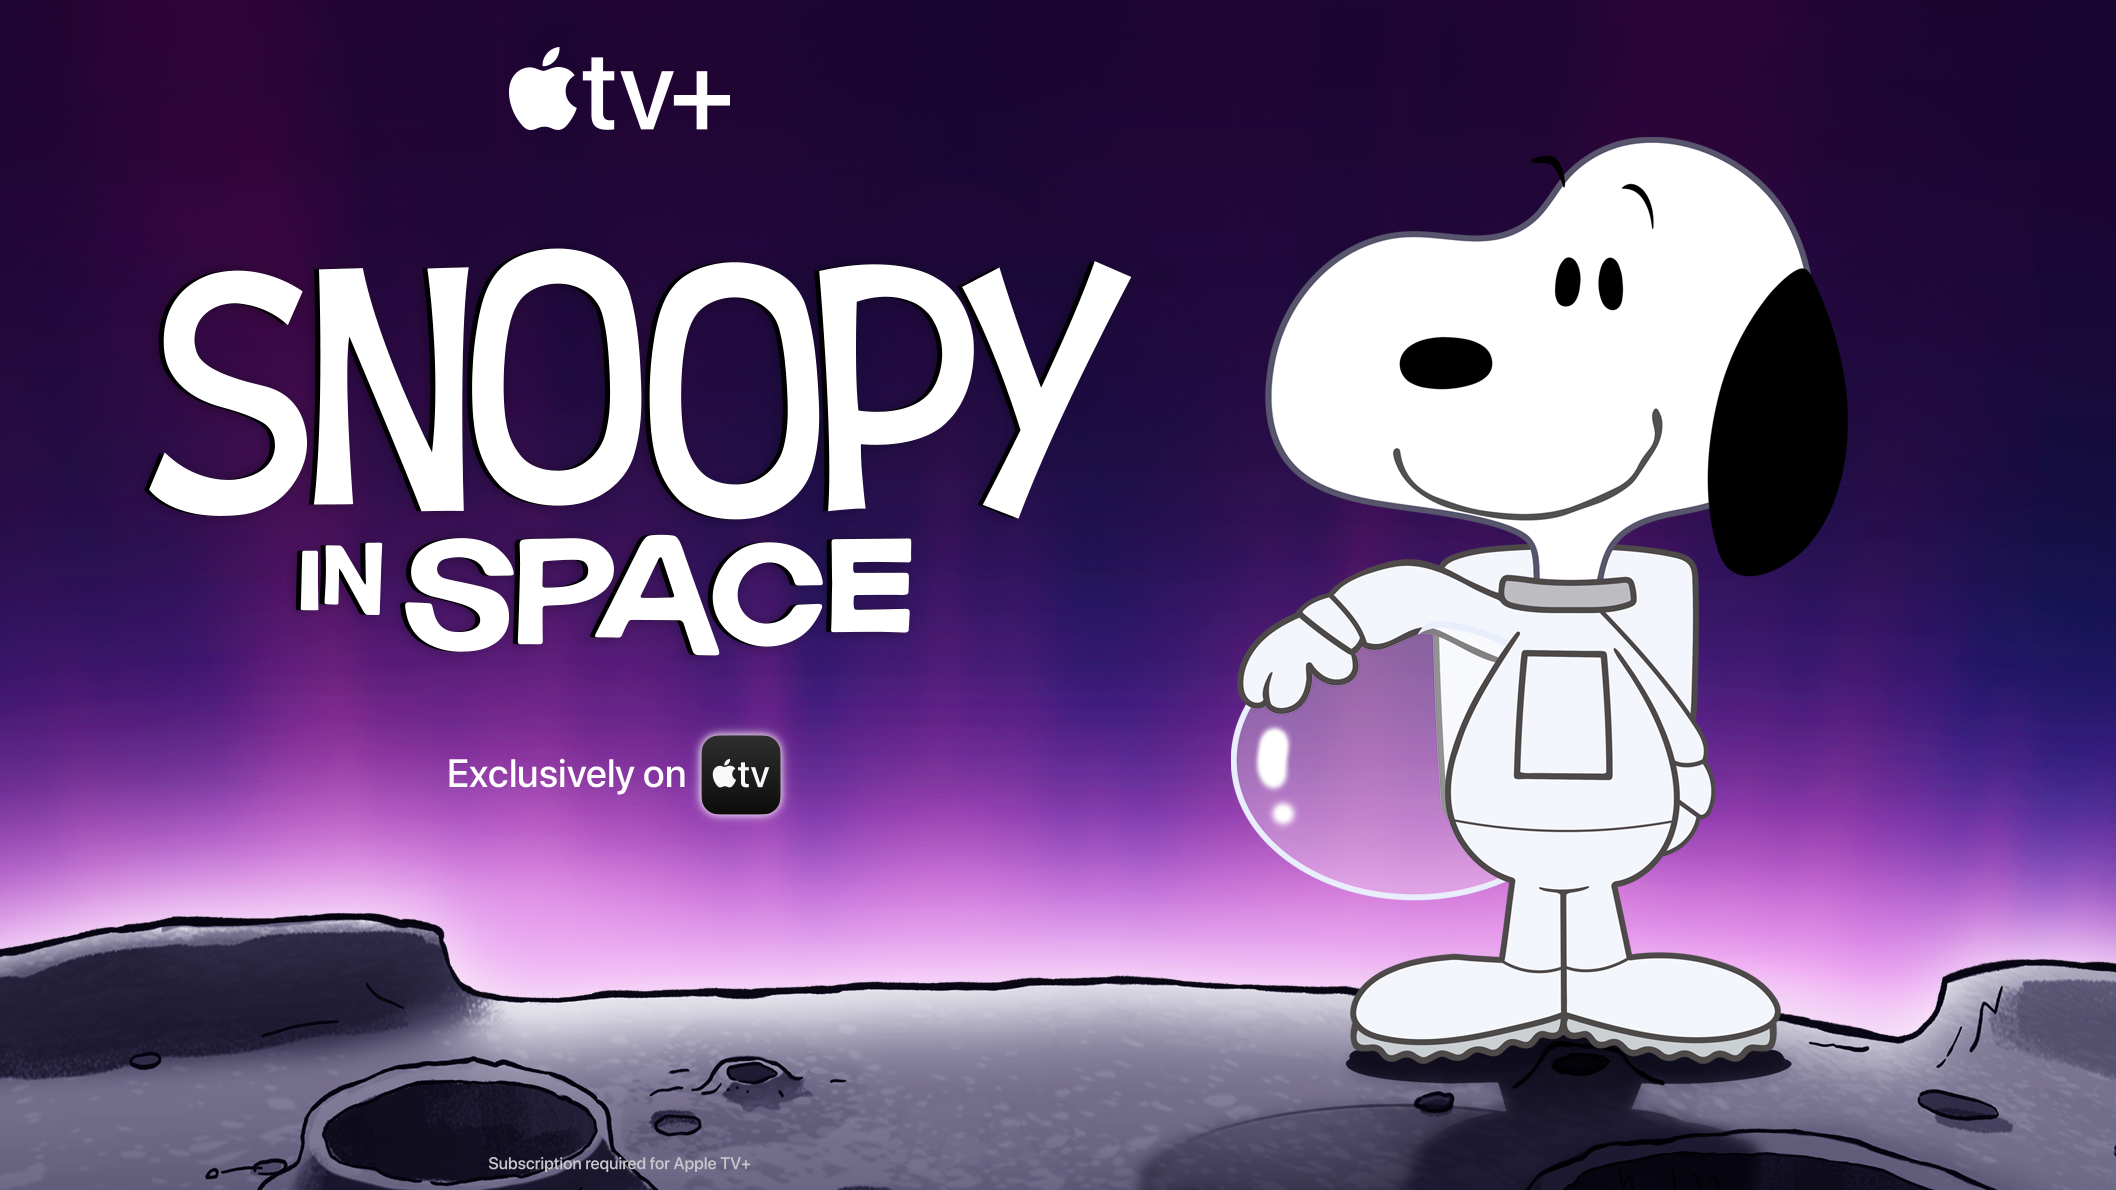 Apple TV+ Snoopy in Space Exclusively on Apple TV. Subscription Required